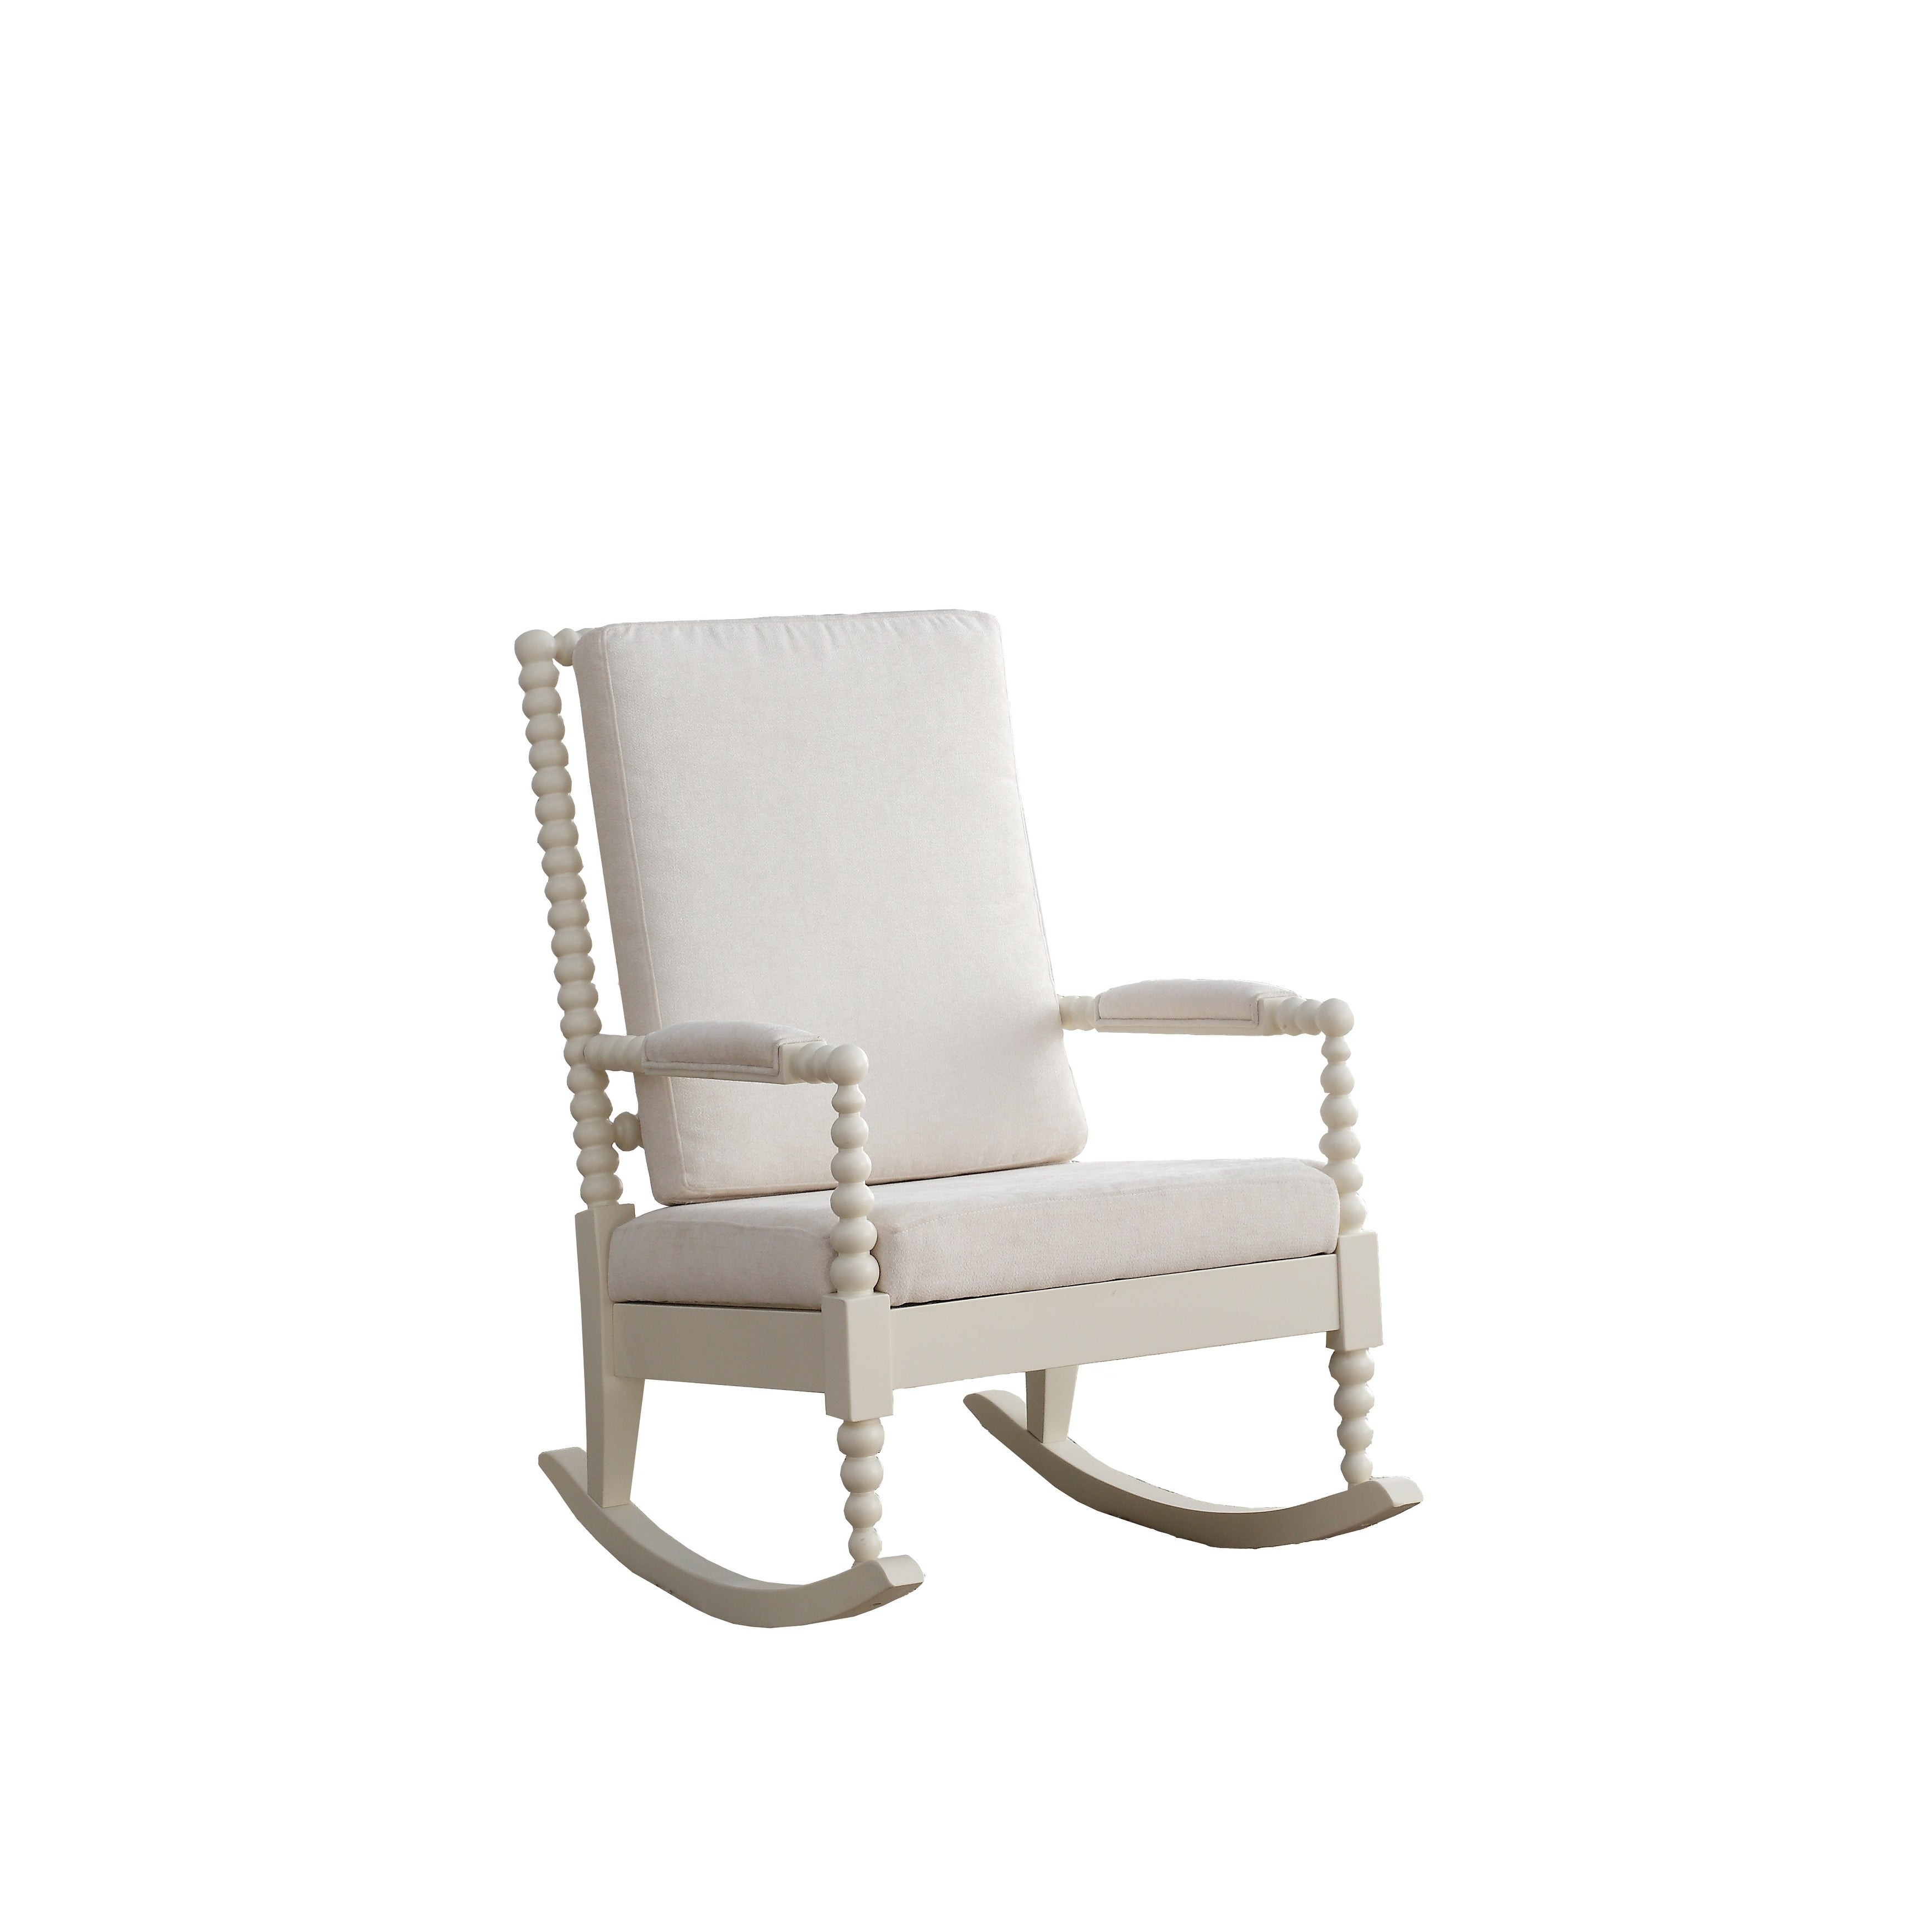 Acme Tristin Rocking Chair In Cream Fabric And White Throughout Rocking Chairs In Cream Fabric And White (#2 of 20)